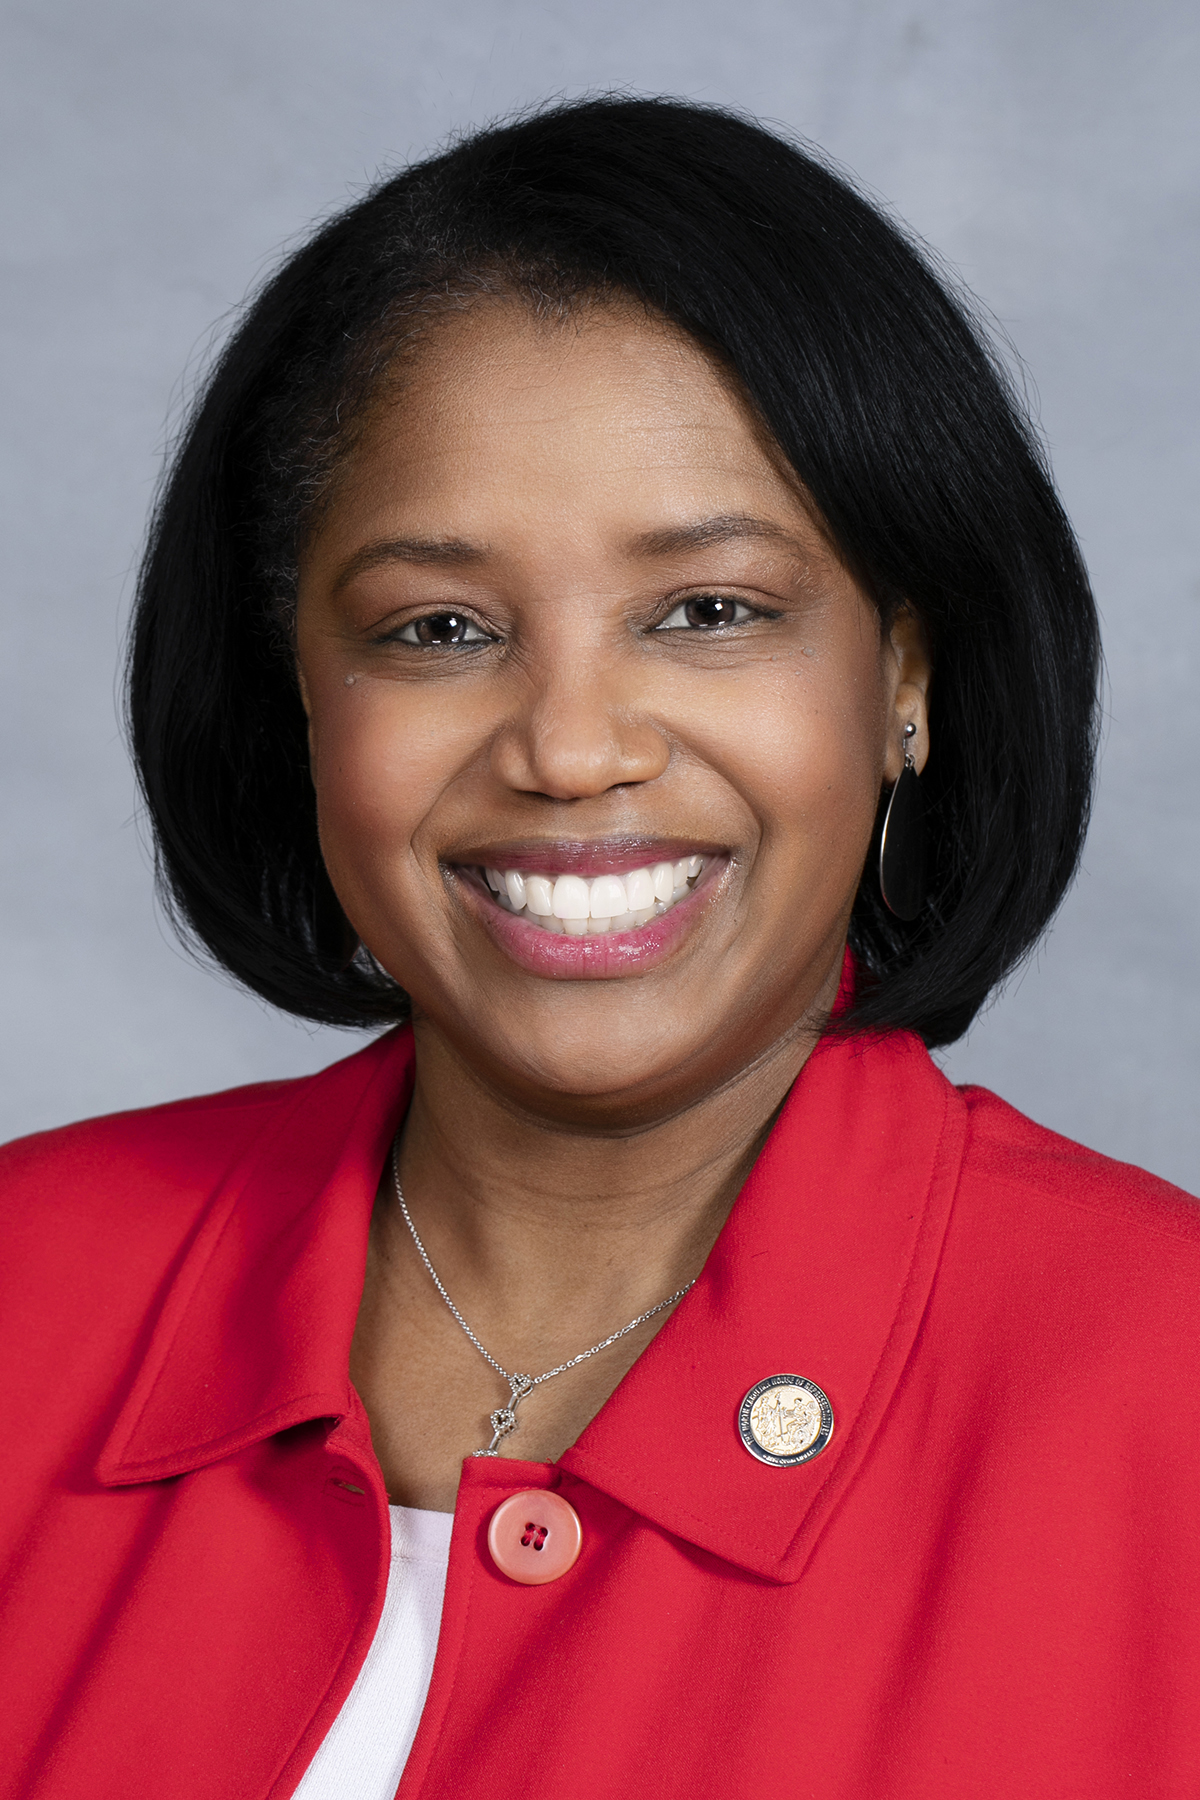 N.C. Rep Kandie Smith